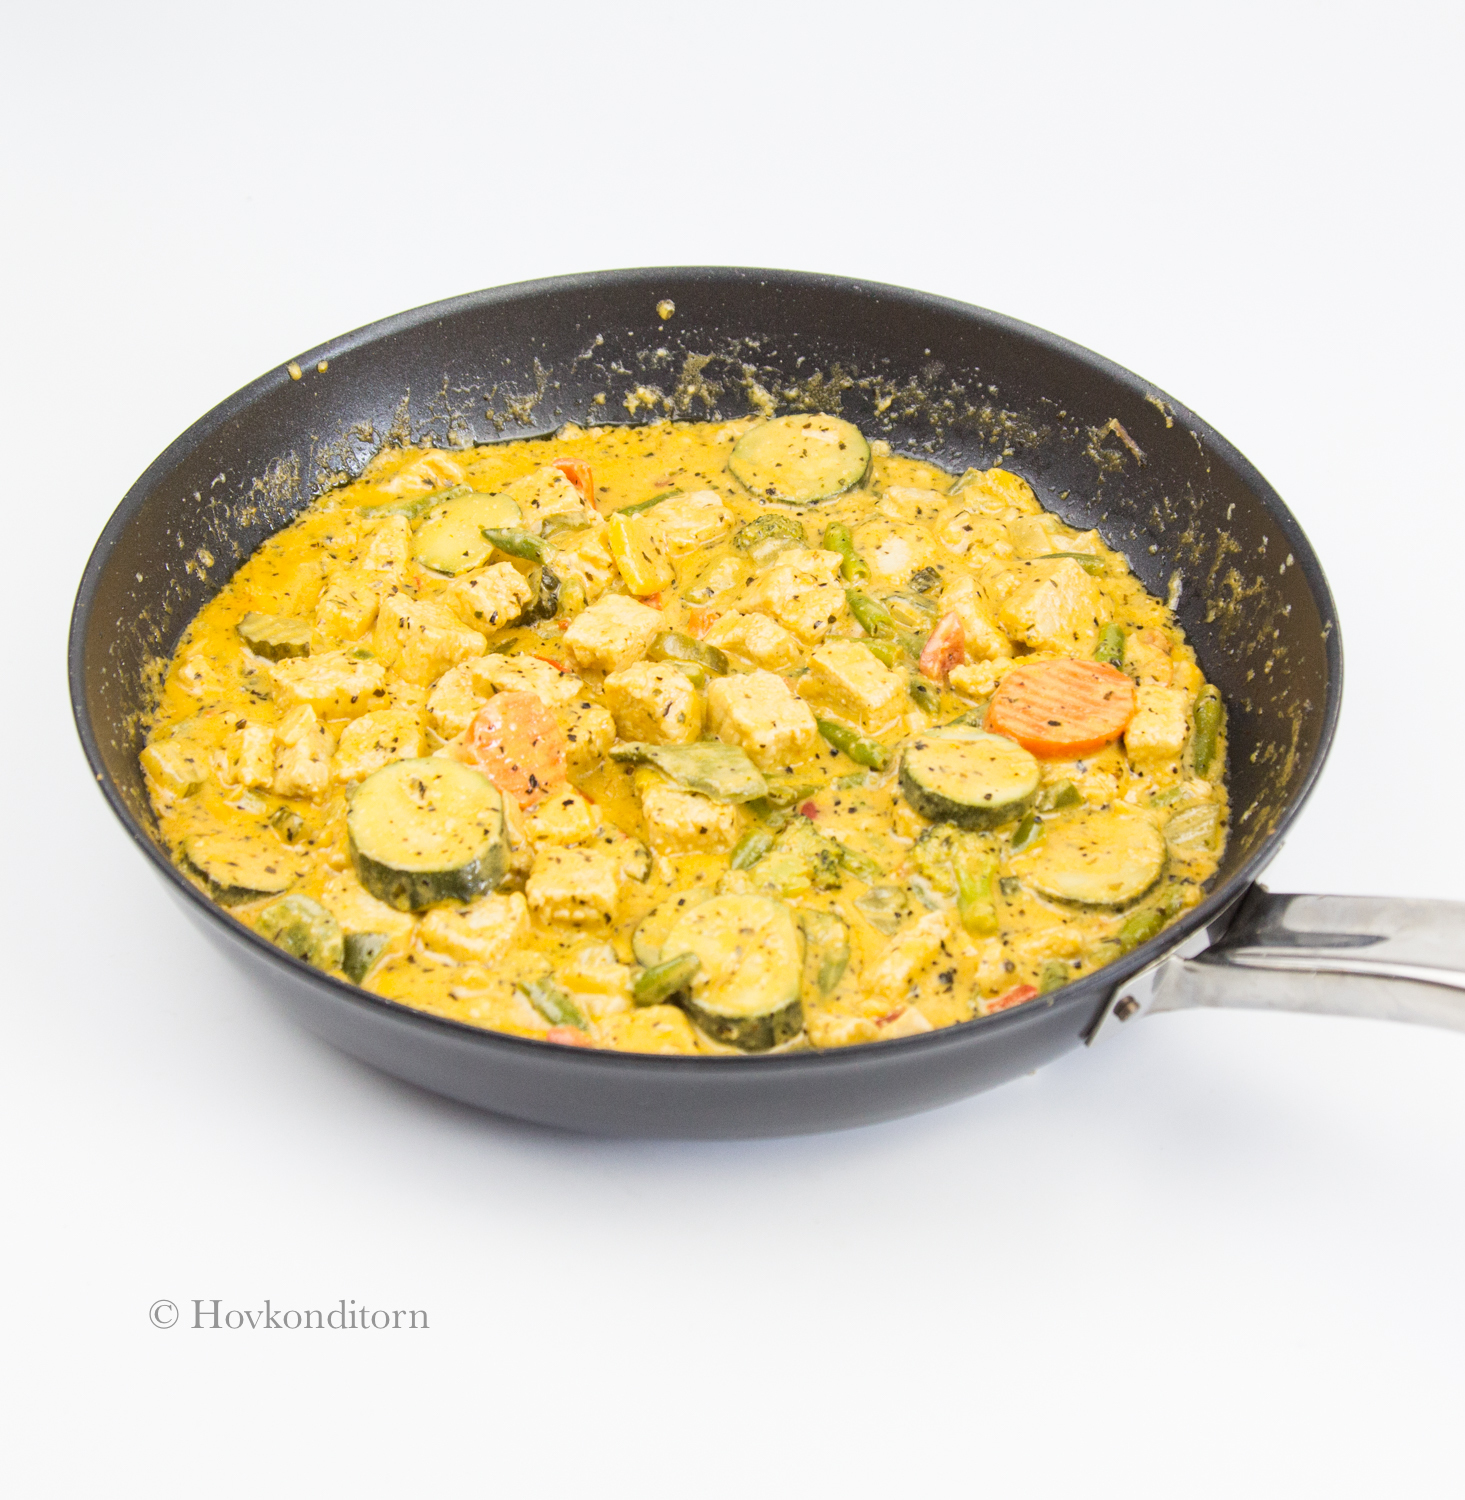 Creamy Quorn Vegetable Sauce